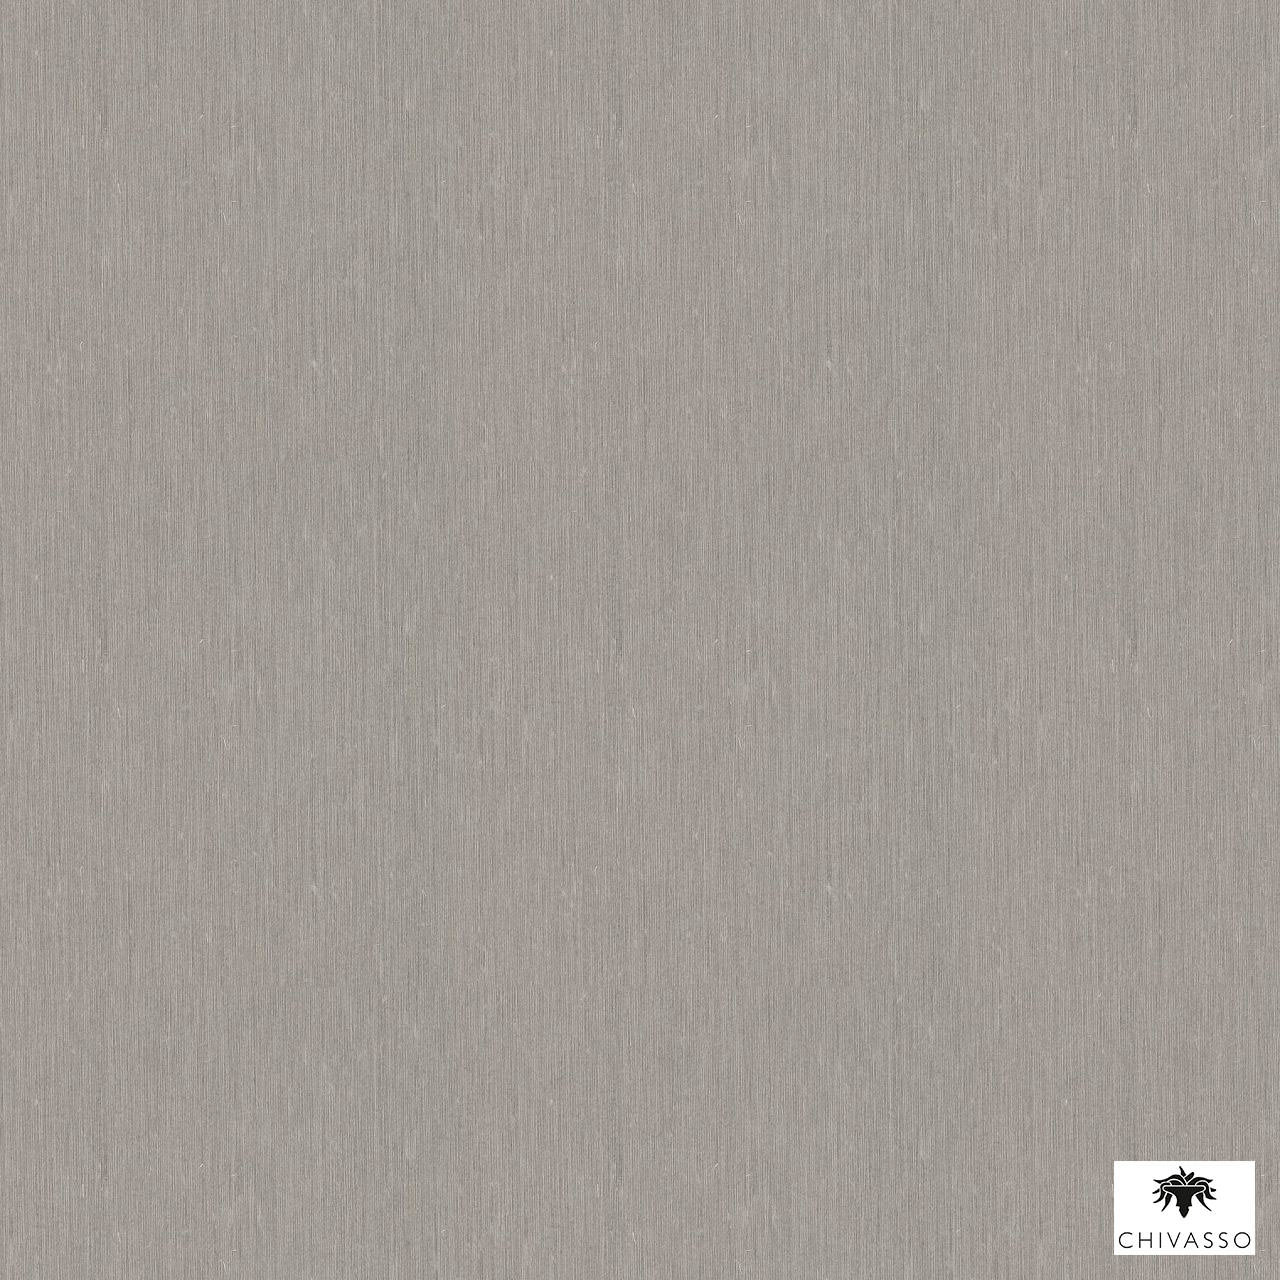 Chivasso - Colour Block - Ch9112-092  | Wallpaper, Wallcovering - Grey, Plain, Tan, Taupe, Domestic Use